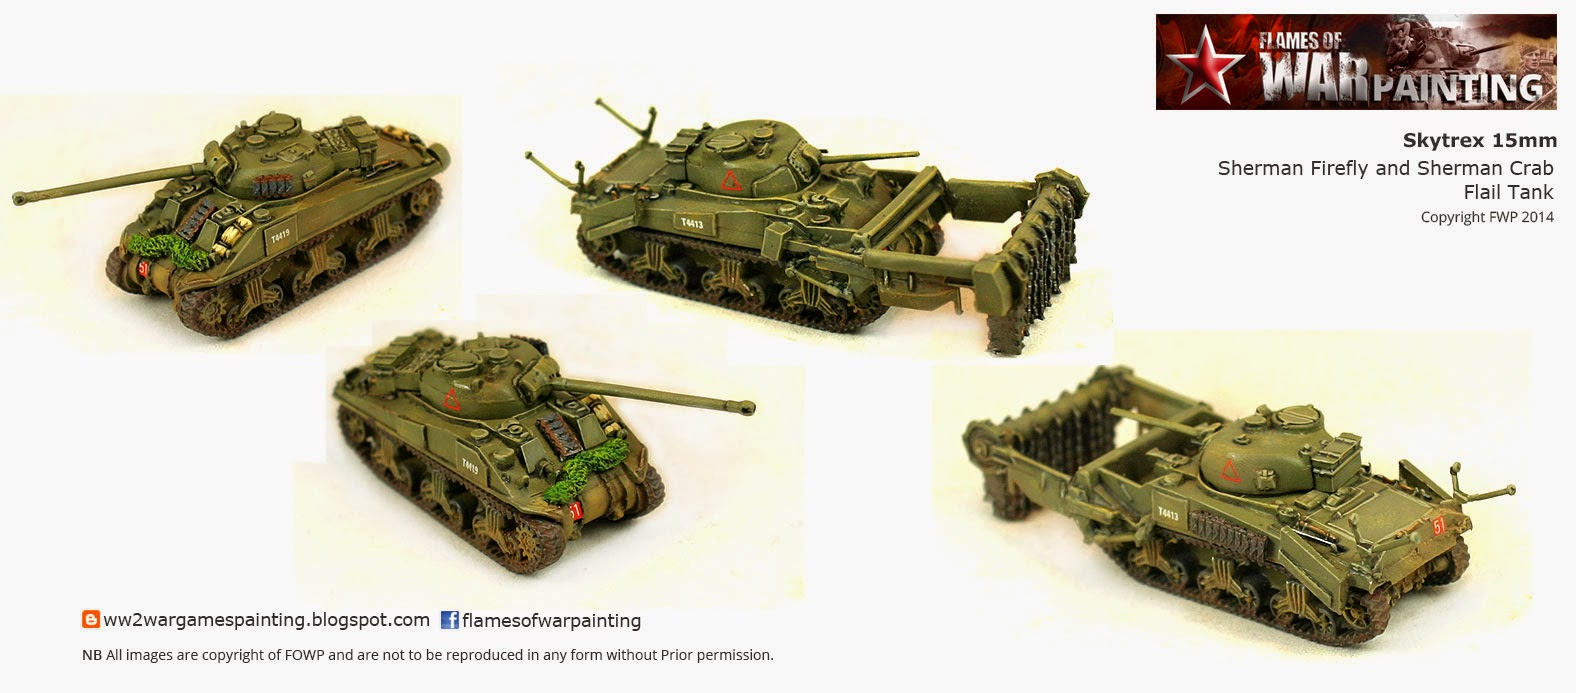 WW2 British Sherman Firefly and Sherman Flail Tank: SkyTrex 15mm